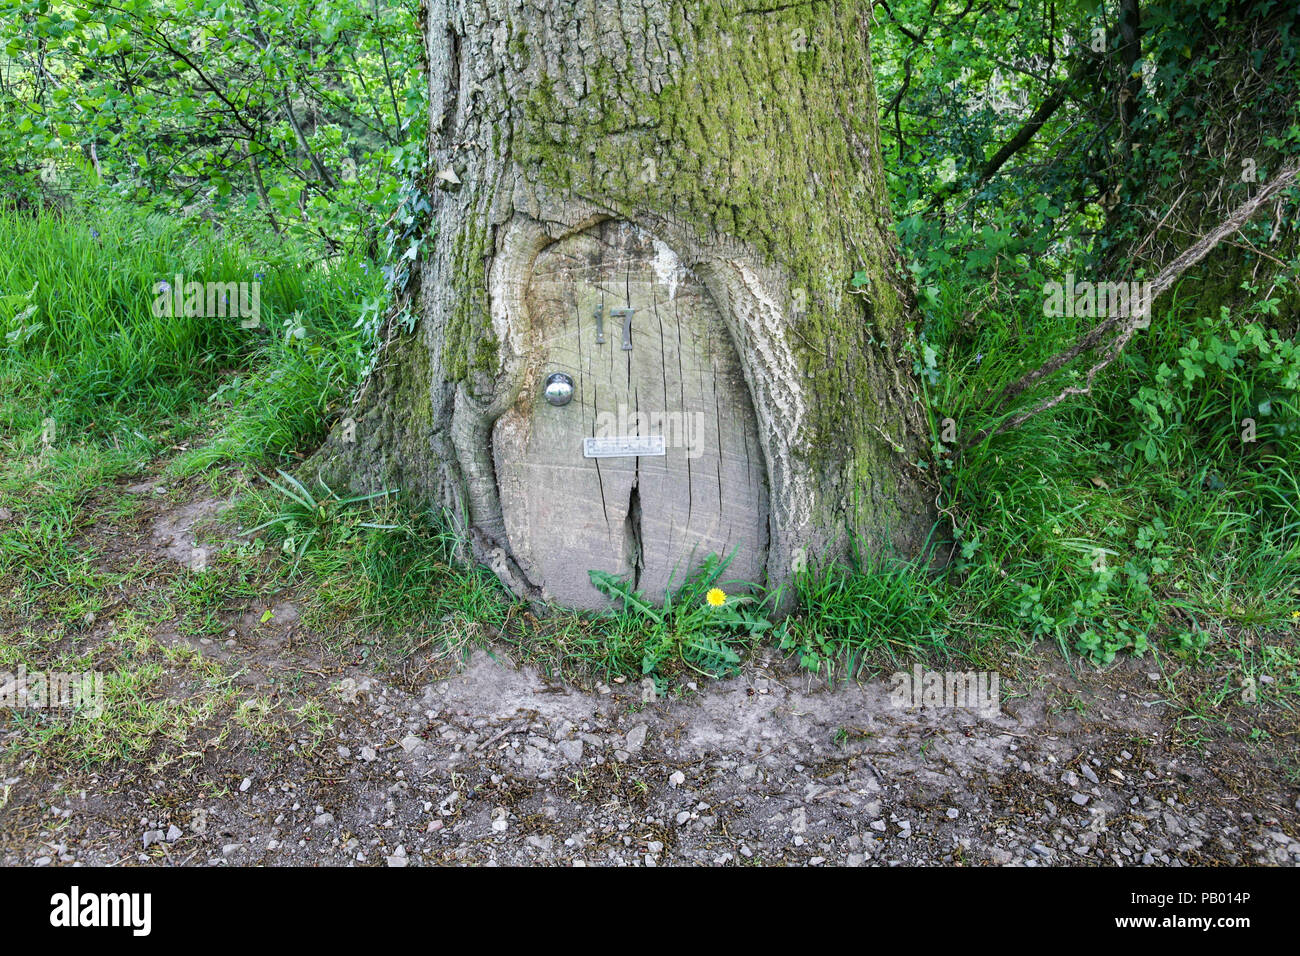 A pretend door with knob, number and letterbox placed where the bark of the Oak tree is missing.  It's can be seen on the towpath of the Brecon Canal. - Stock Image